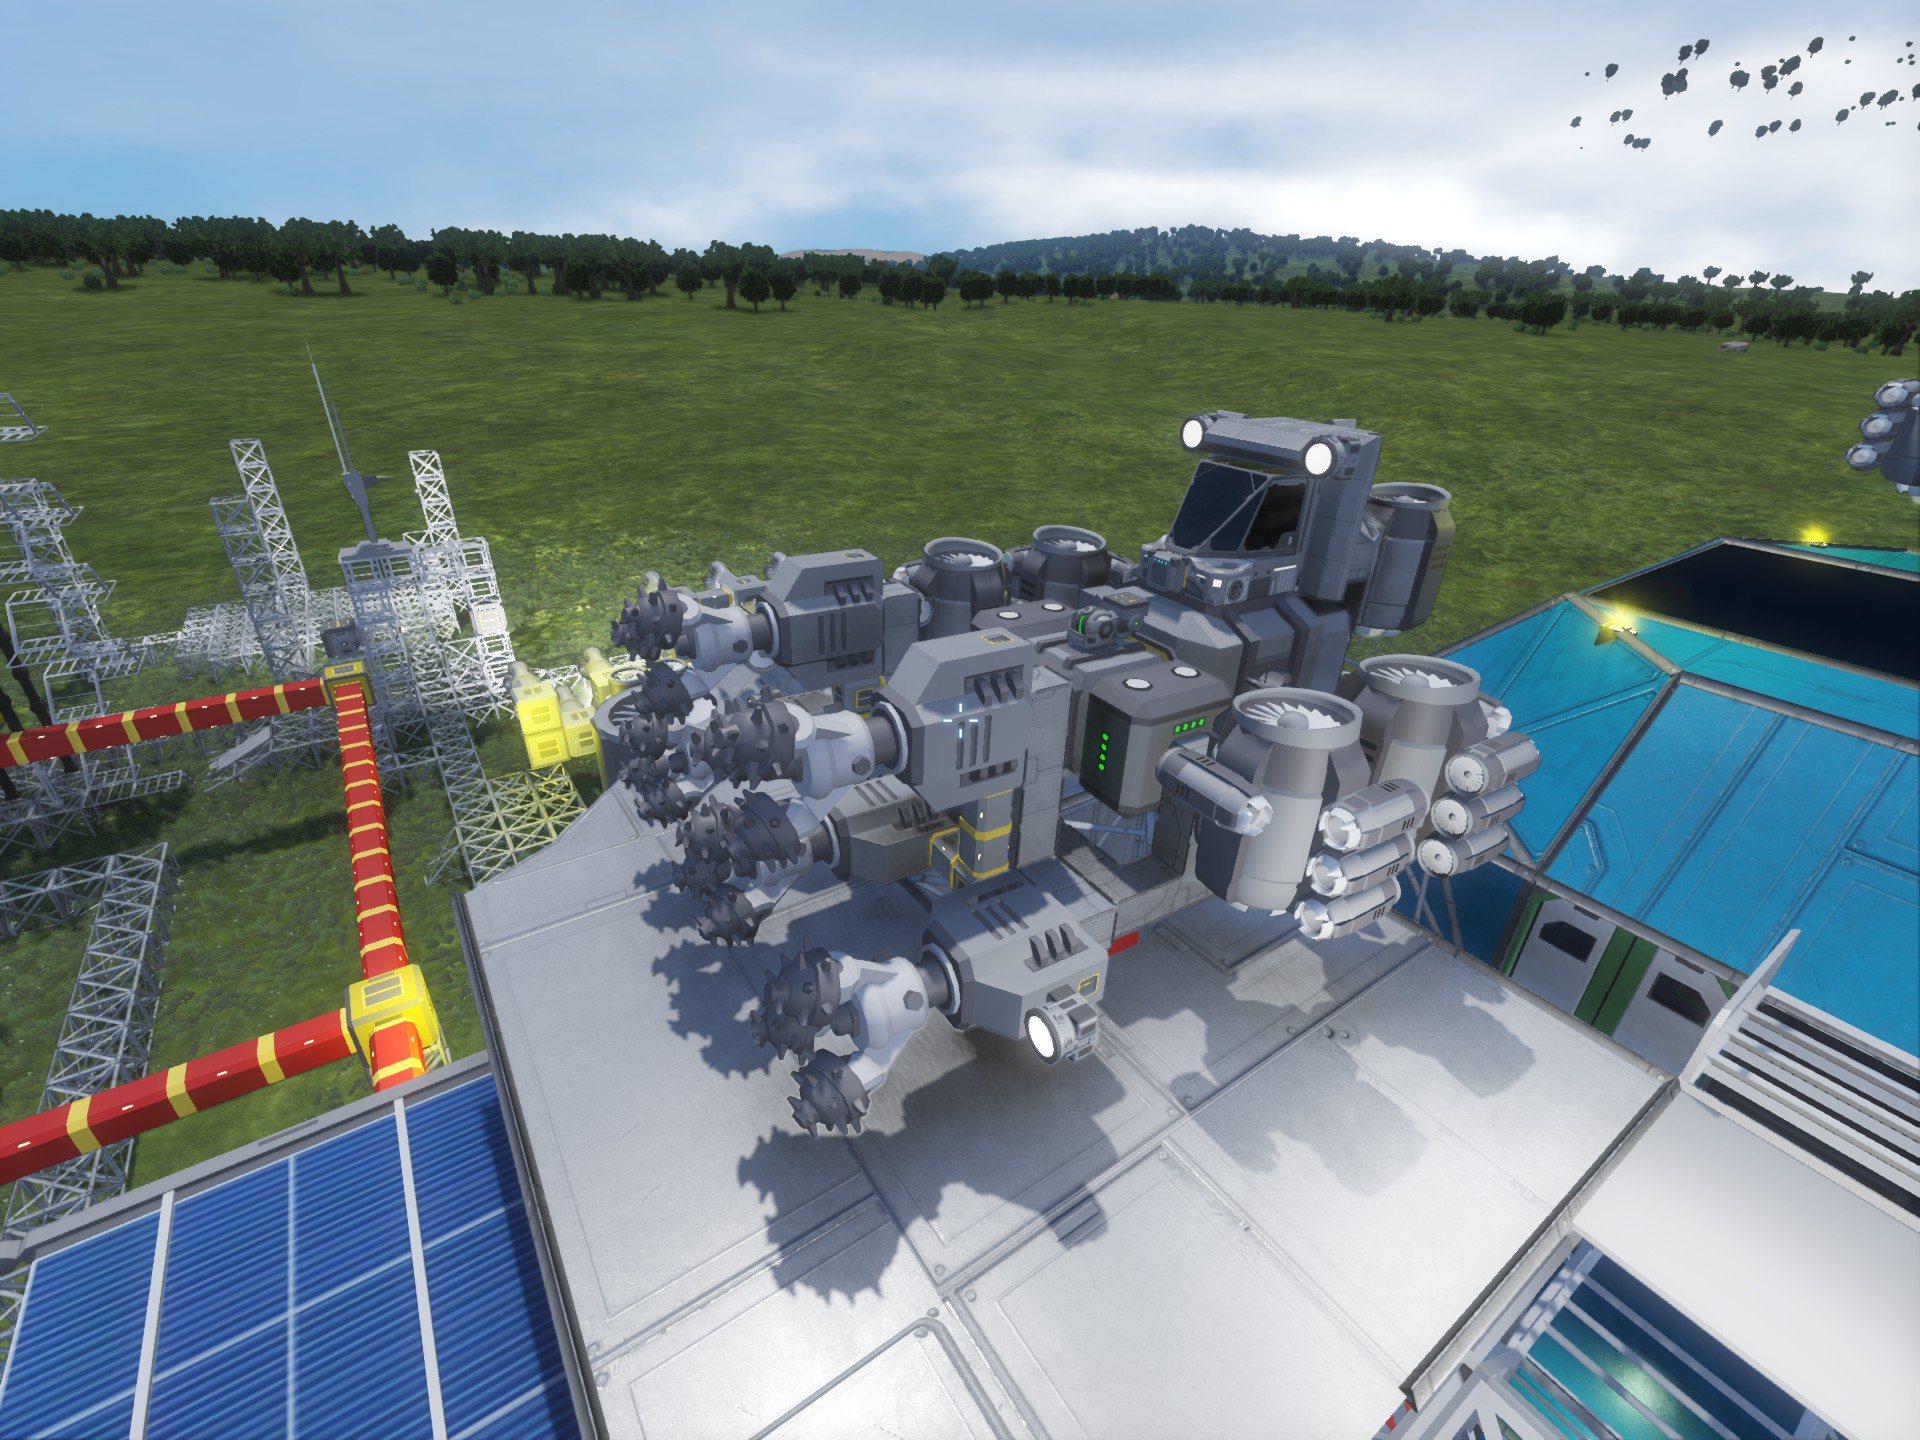 Small atmospheric miner trouble keen software house forums - Small reactor space engineers gallery ...